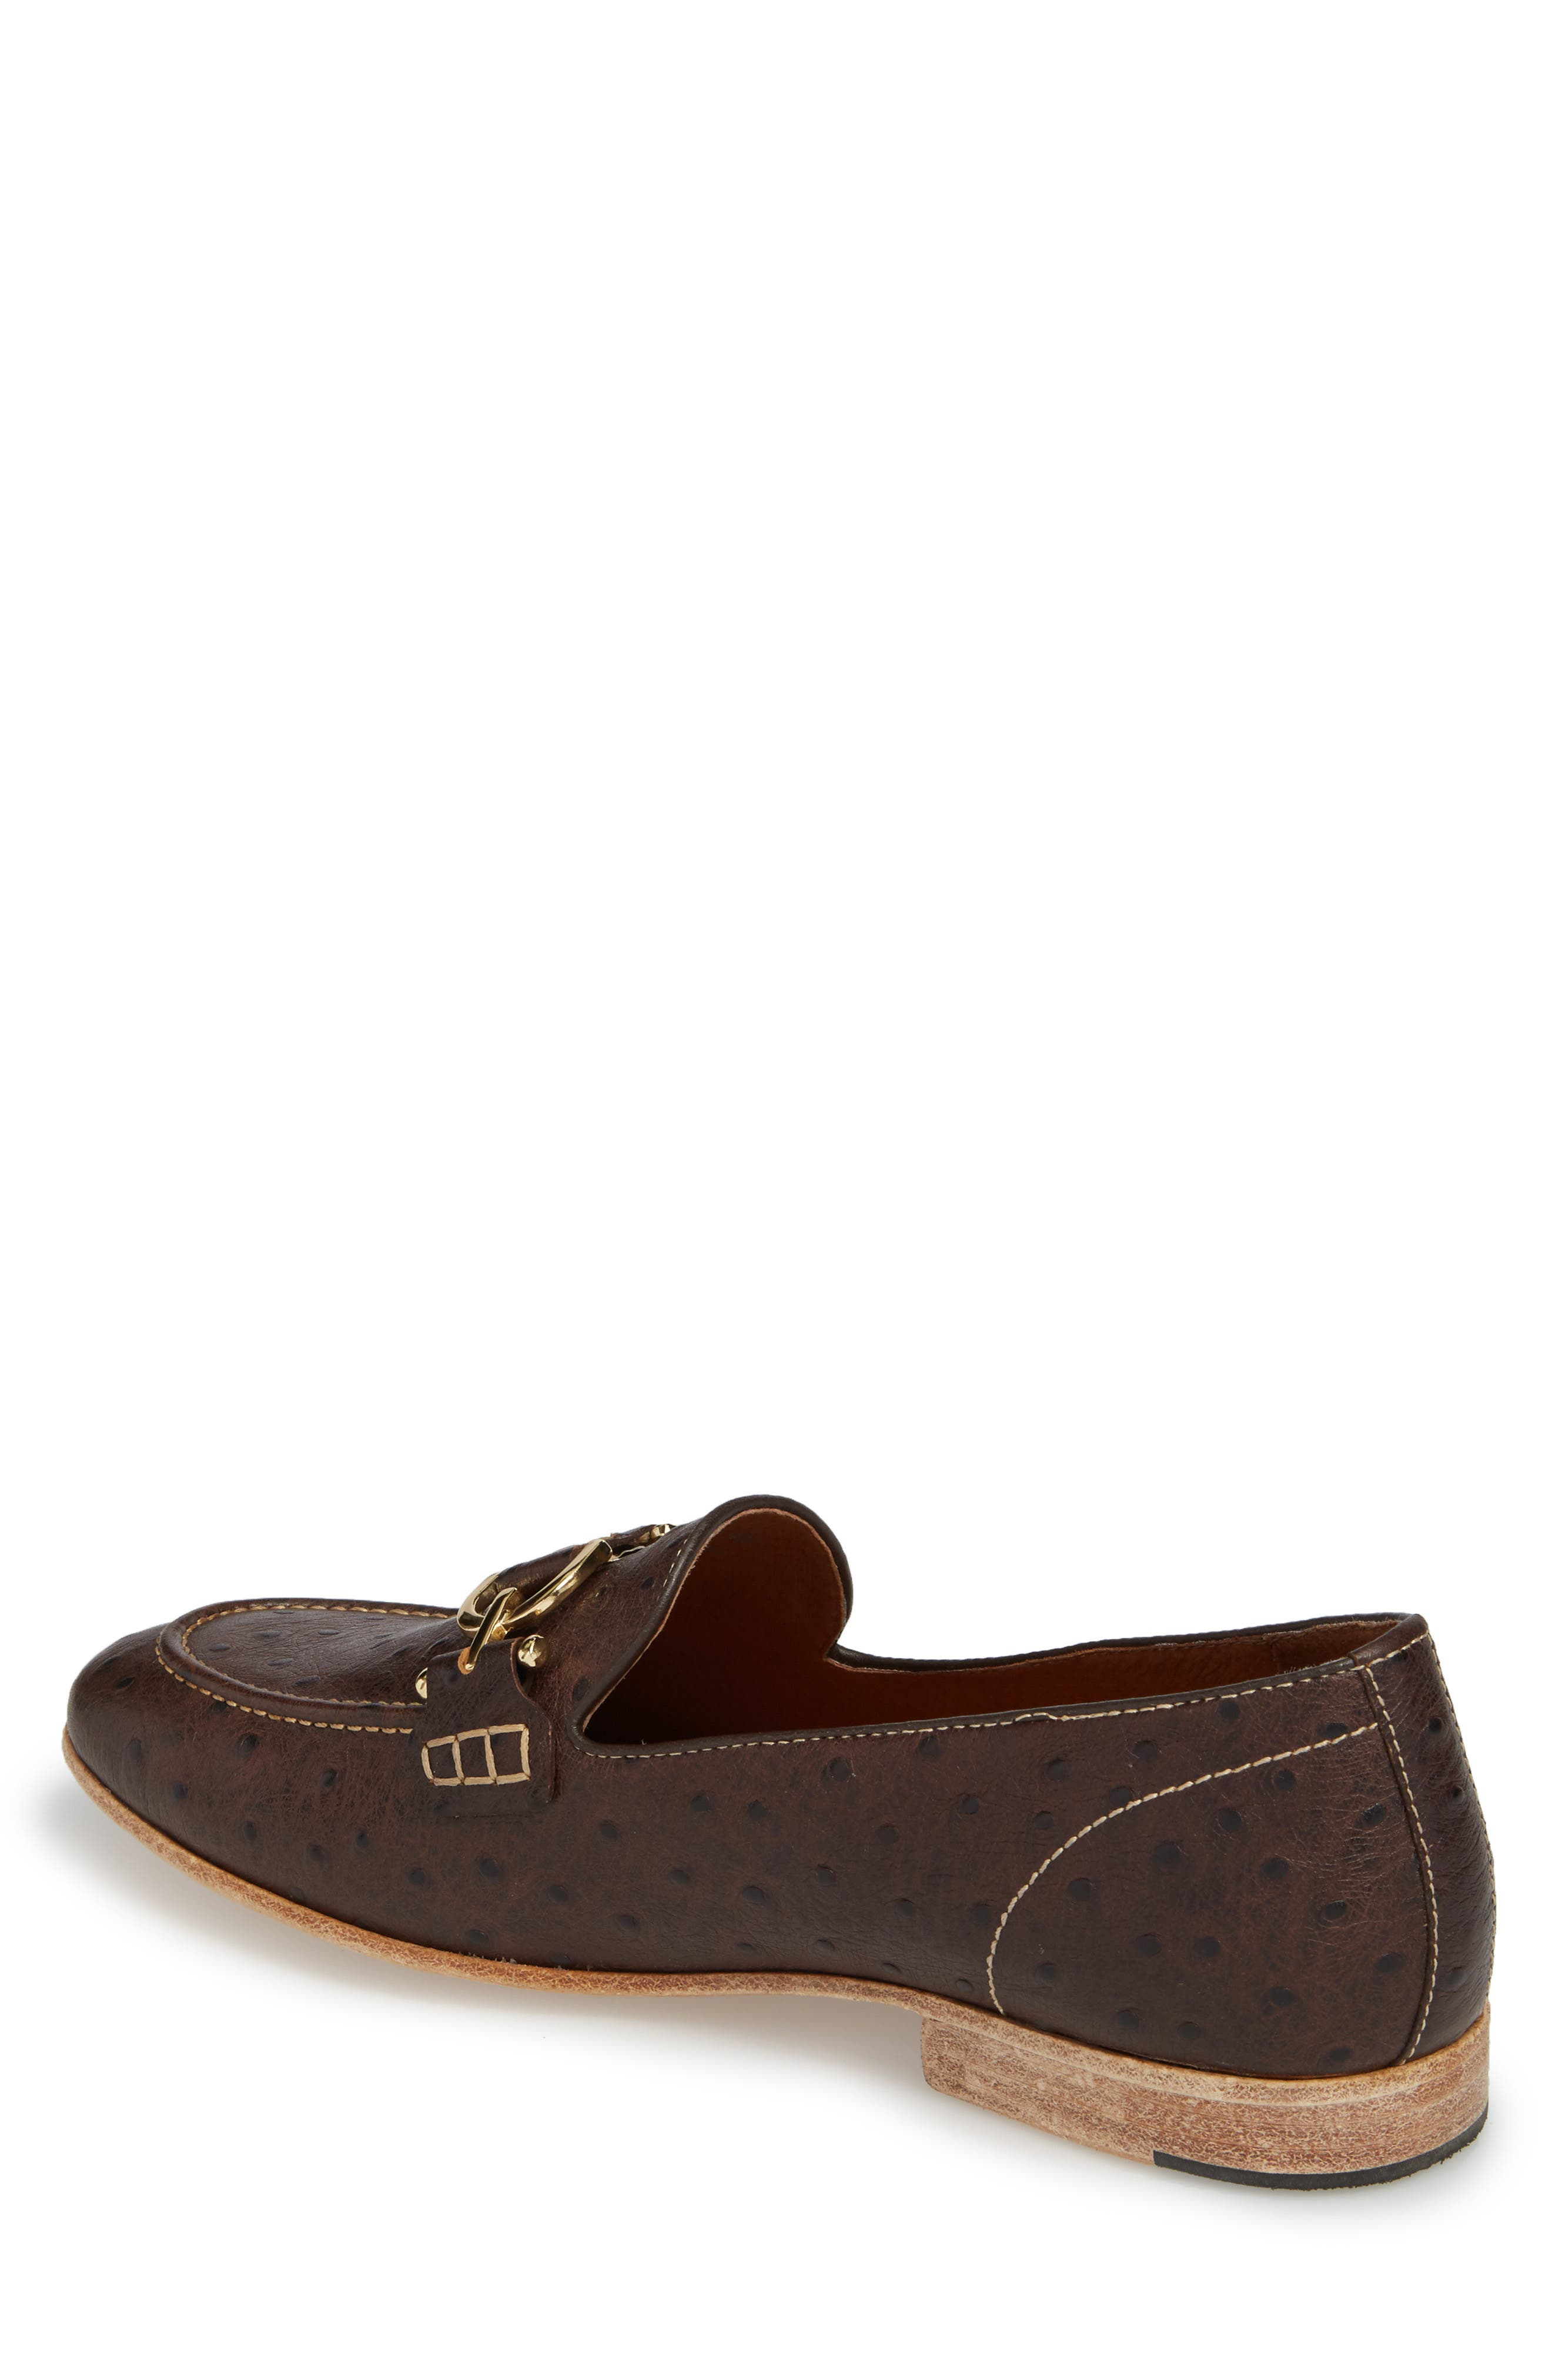 Moritz Apron Toe Bit Loafer,                             Alternate thumbnail 2, color,                             200